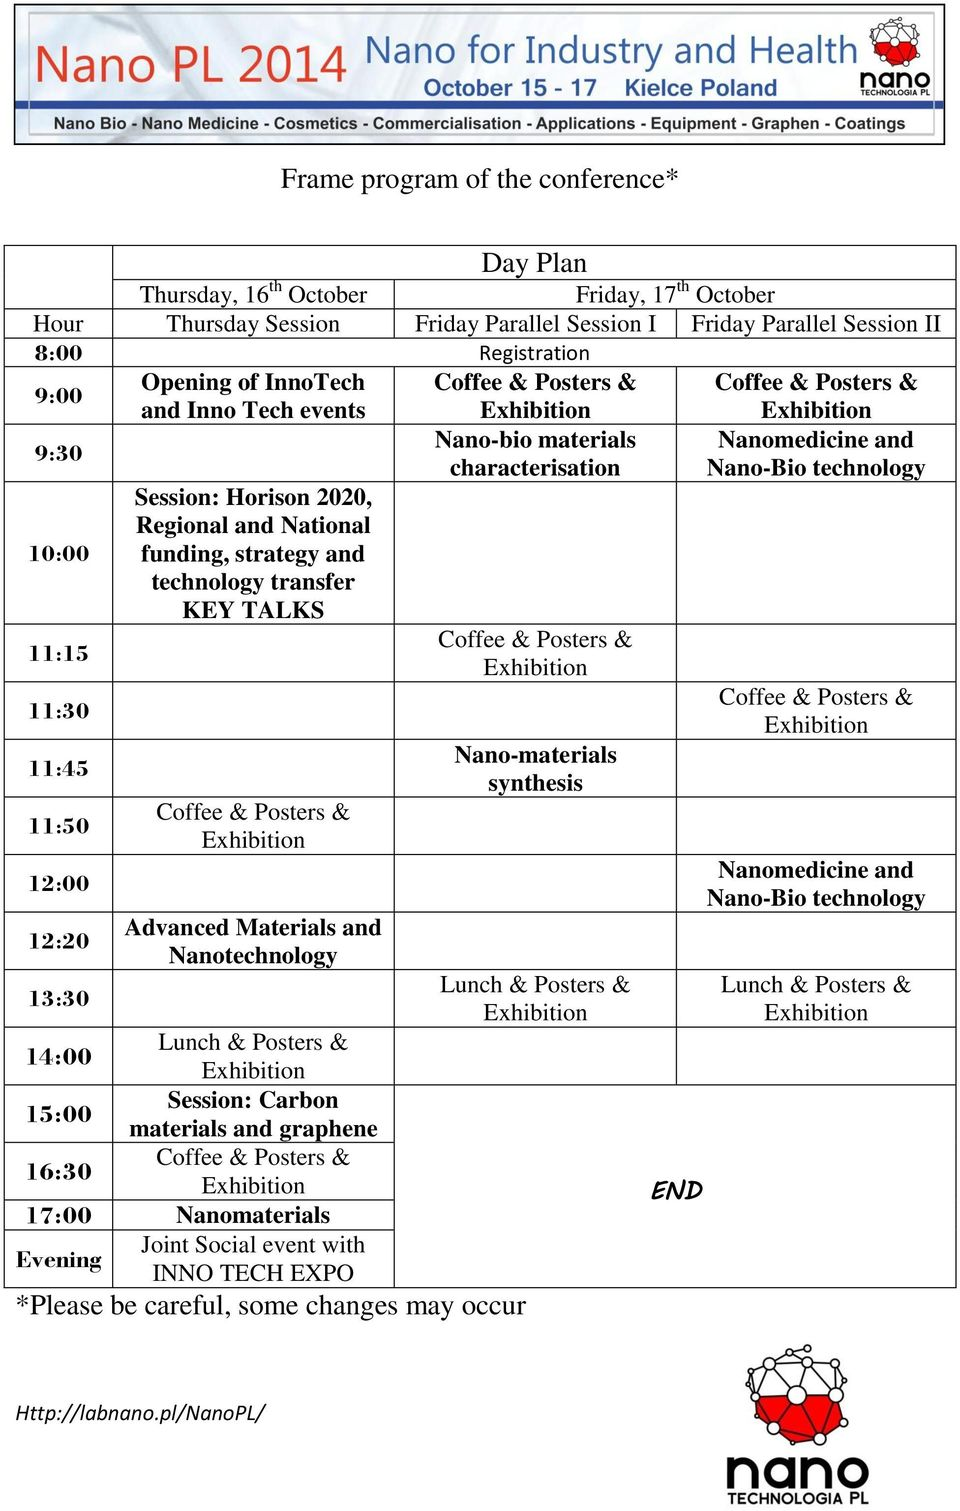 11:15 11:30 11:45 11:50 12:00 12:20 13:30 Session: Horison 2020, Regional and National funding, strategy and technology transfer KEY TALKS Coffee & Posters & Advanced Materials and Nanotechnology